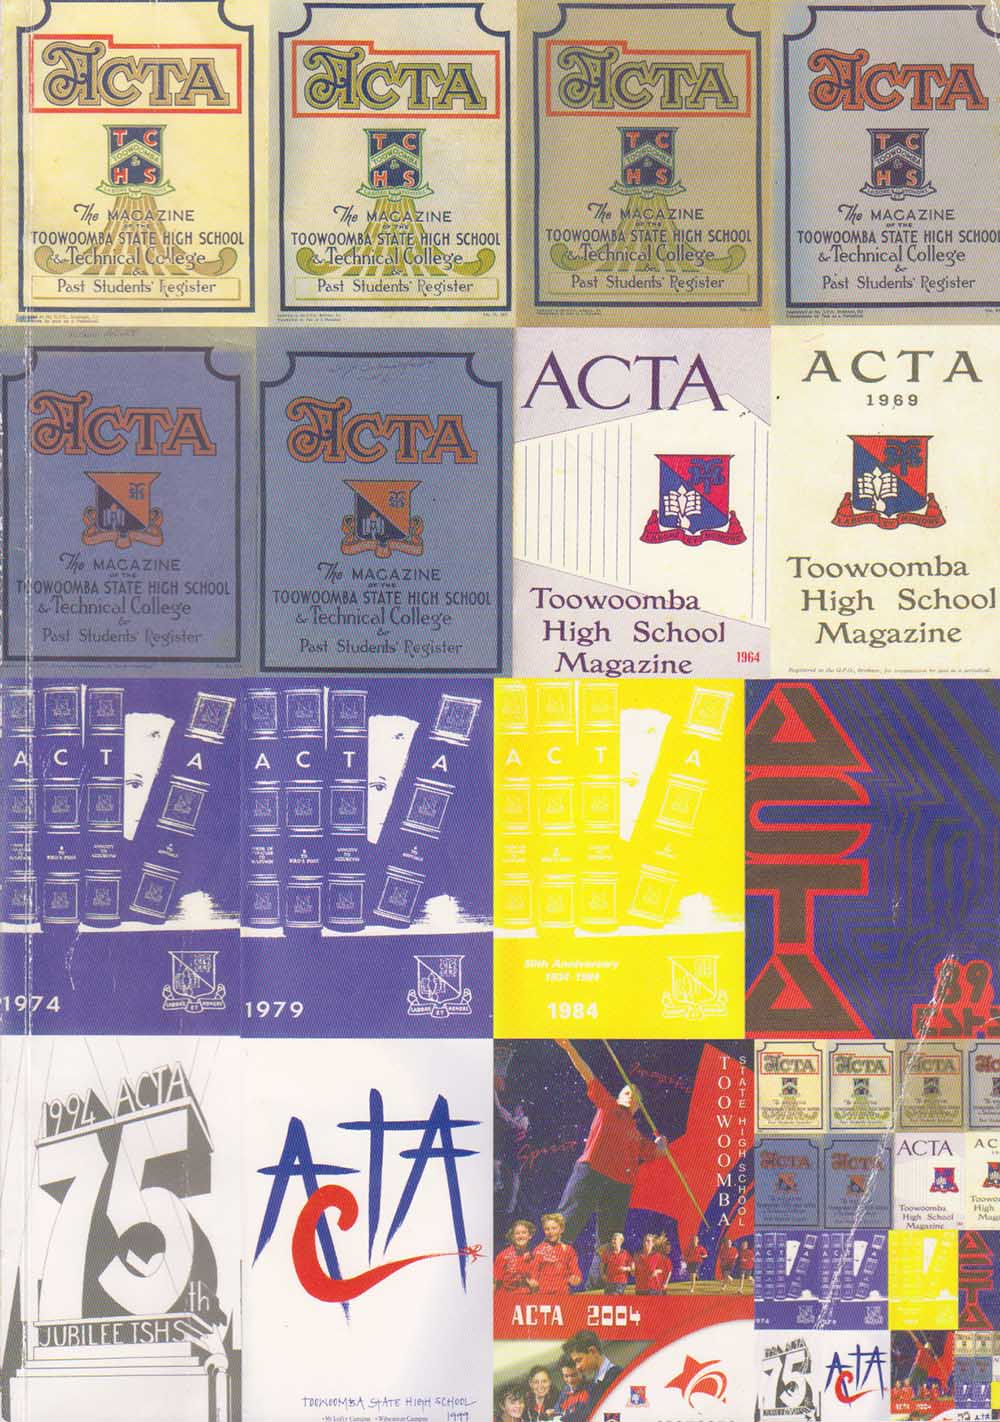 Covers of various ACTA magazines